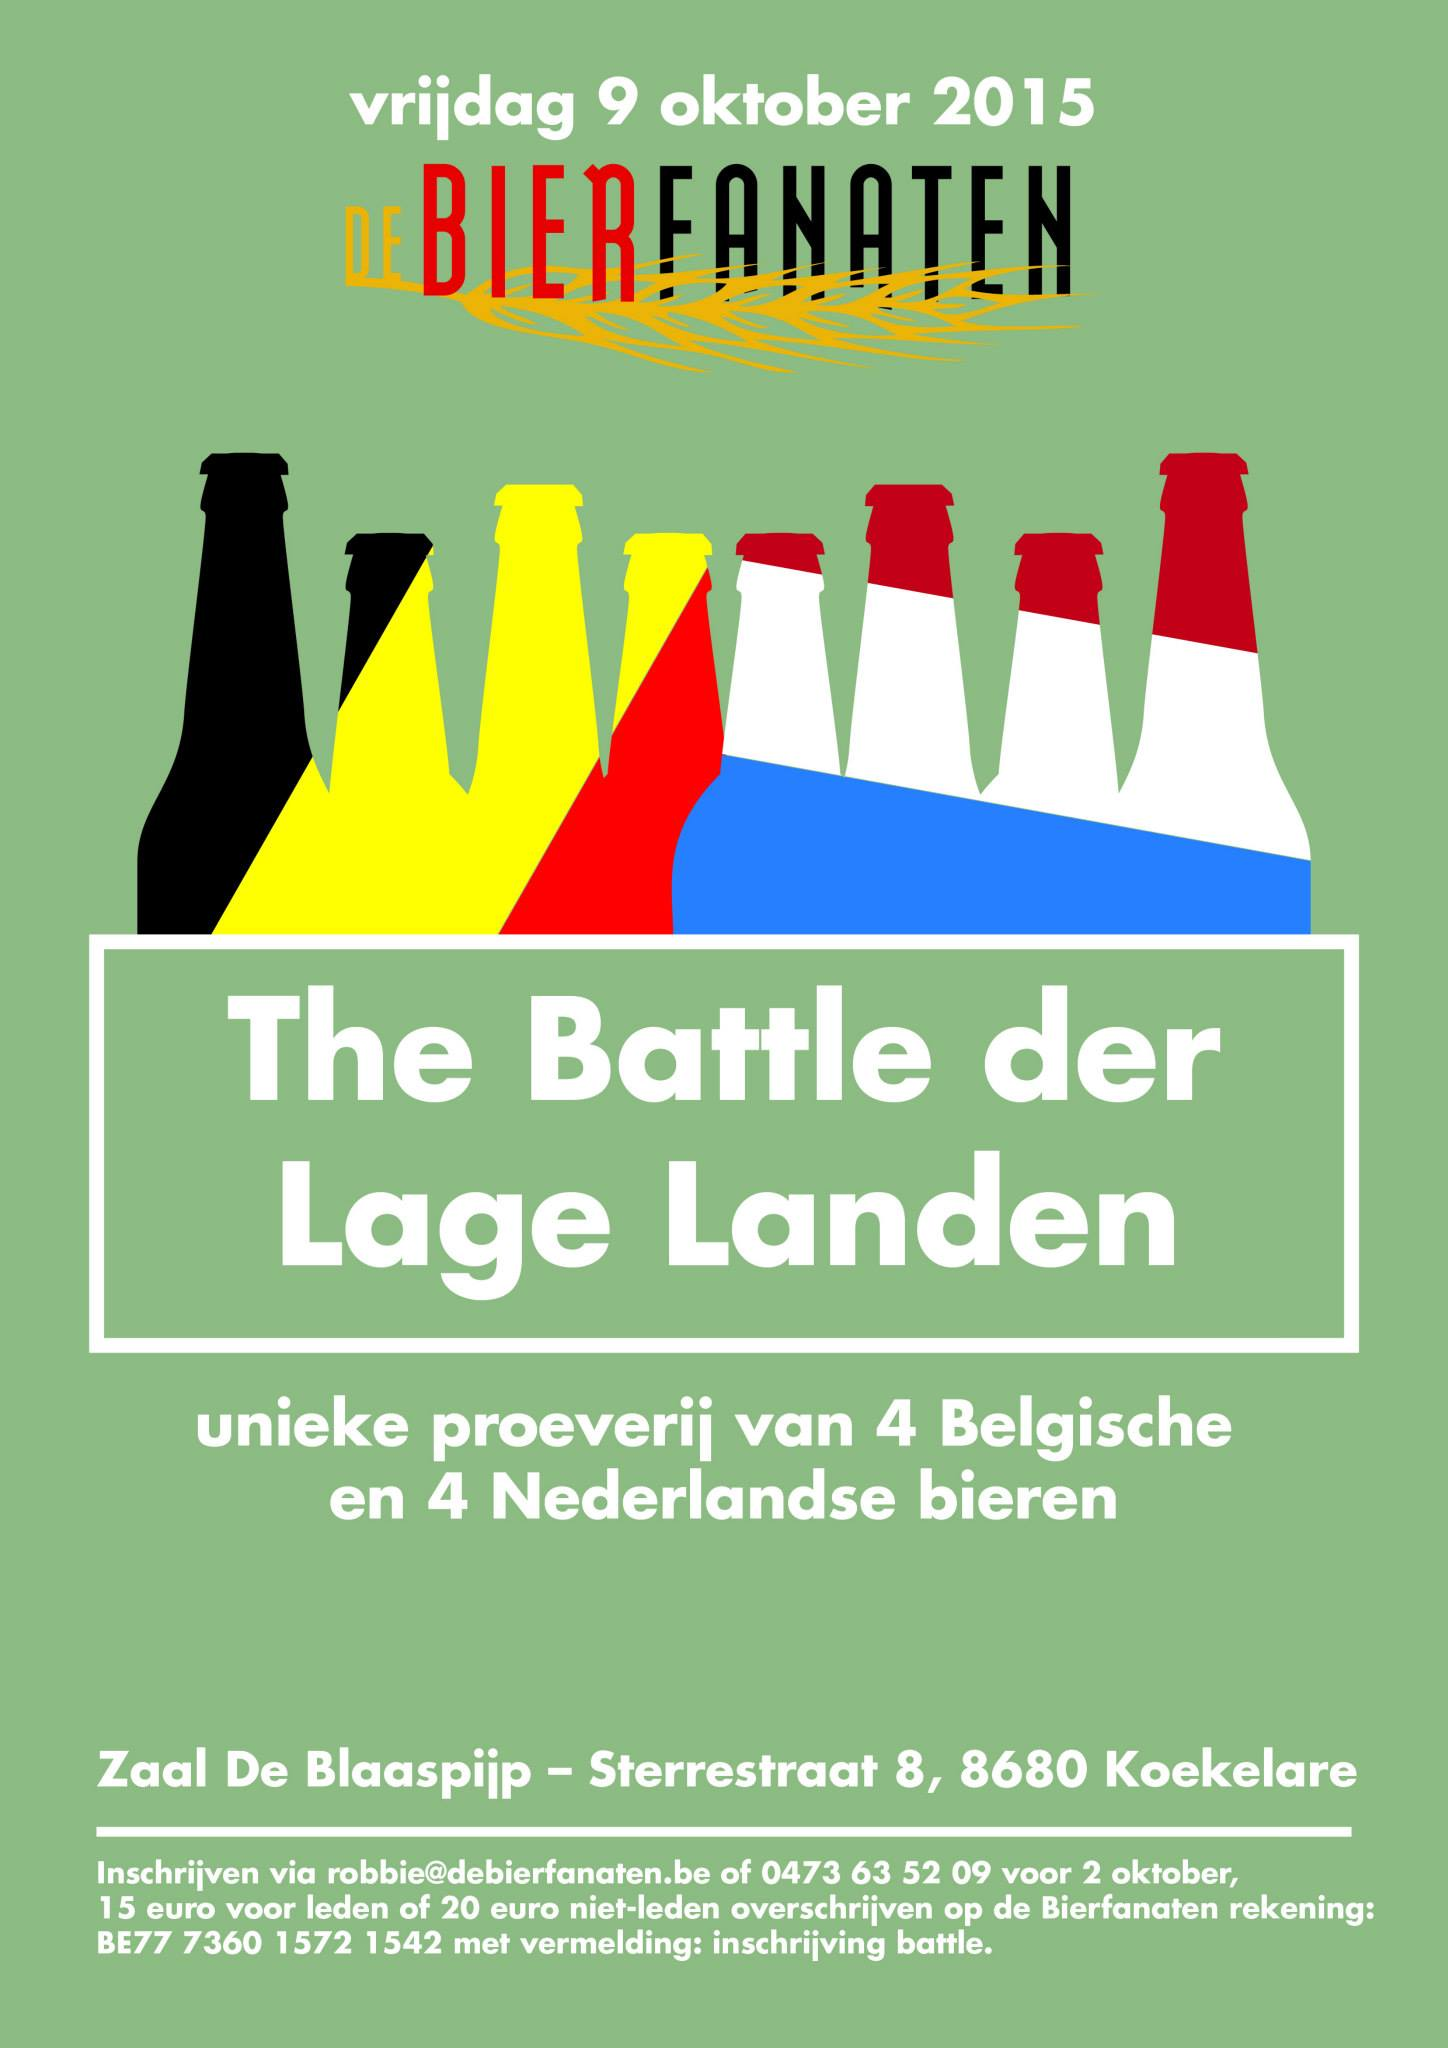 vzw De Bierfanaten The Battle